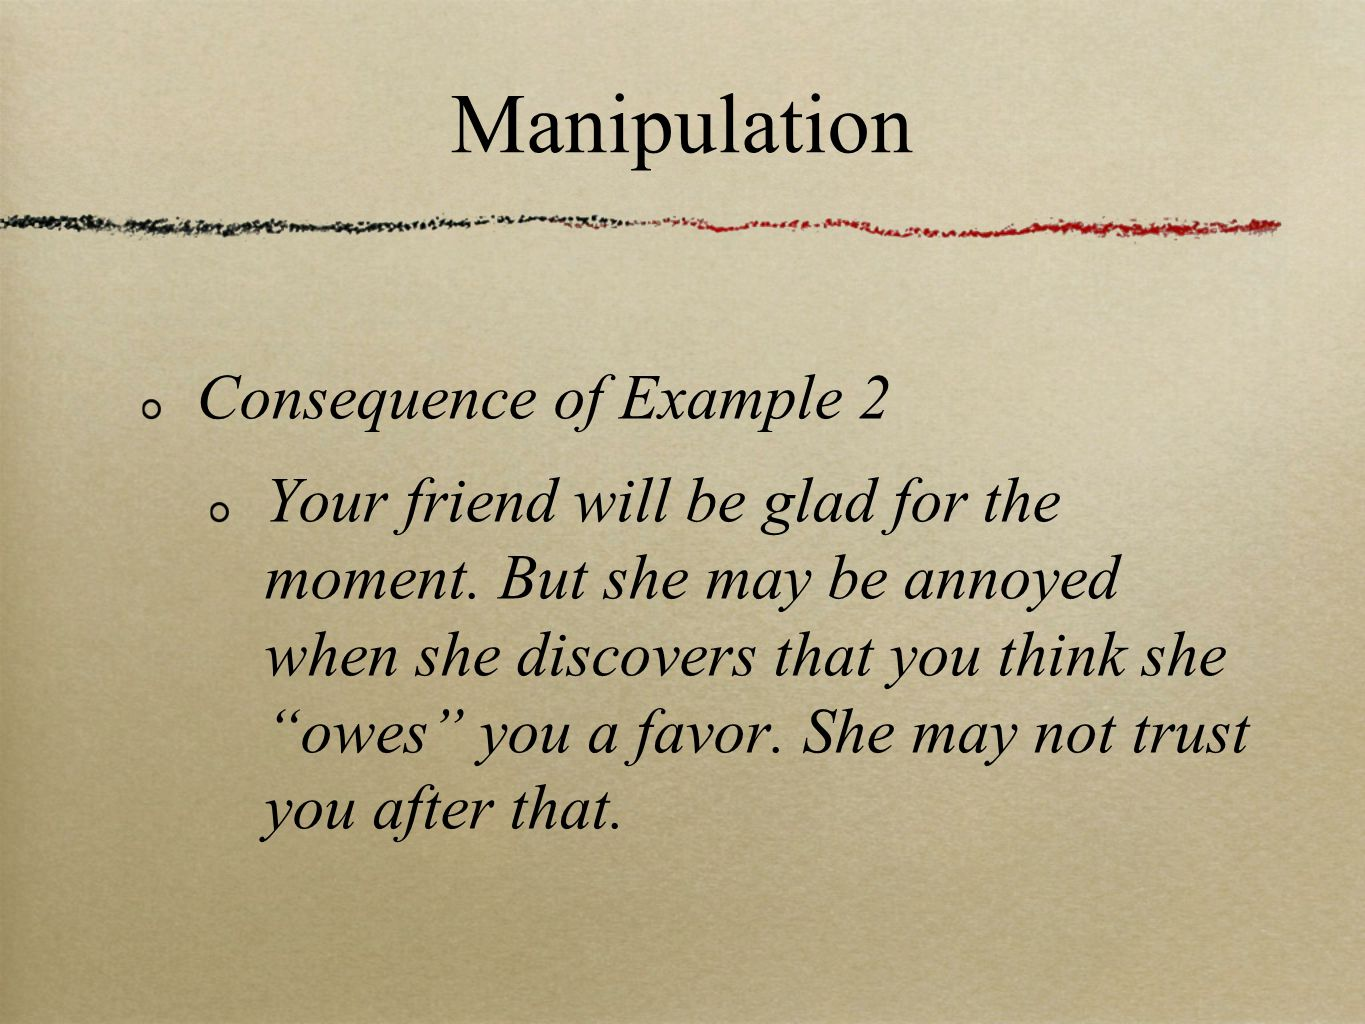 Manipulation Consequence of Example 2